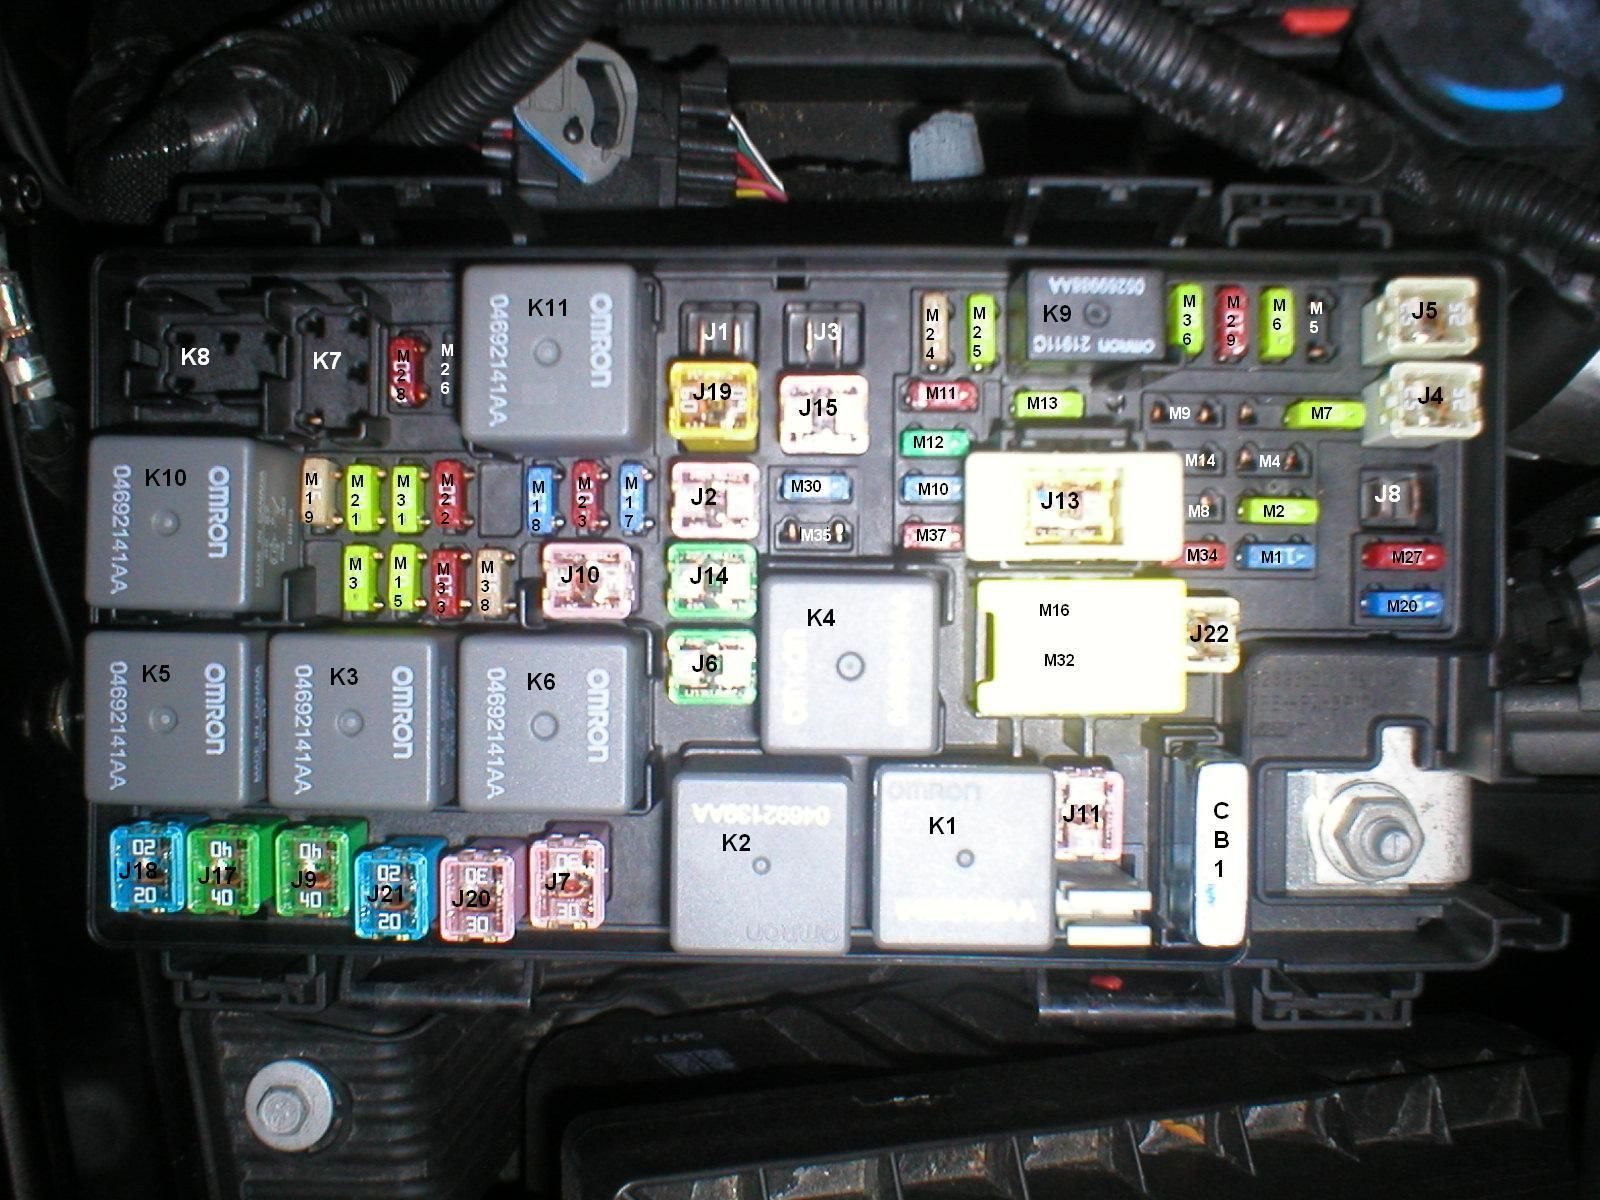 Jeep JK Fuse Box Map Layout Diagram - JeepForum.com | Jeep jk, Fuse box,  2007 jeep wrangler | Willys Truck Fuse Box |  | Pinterest